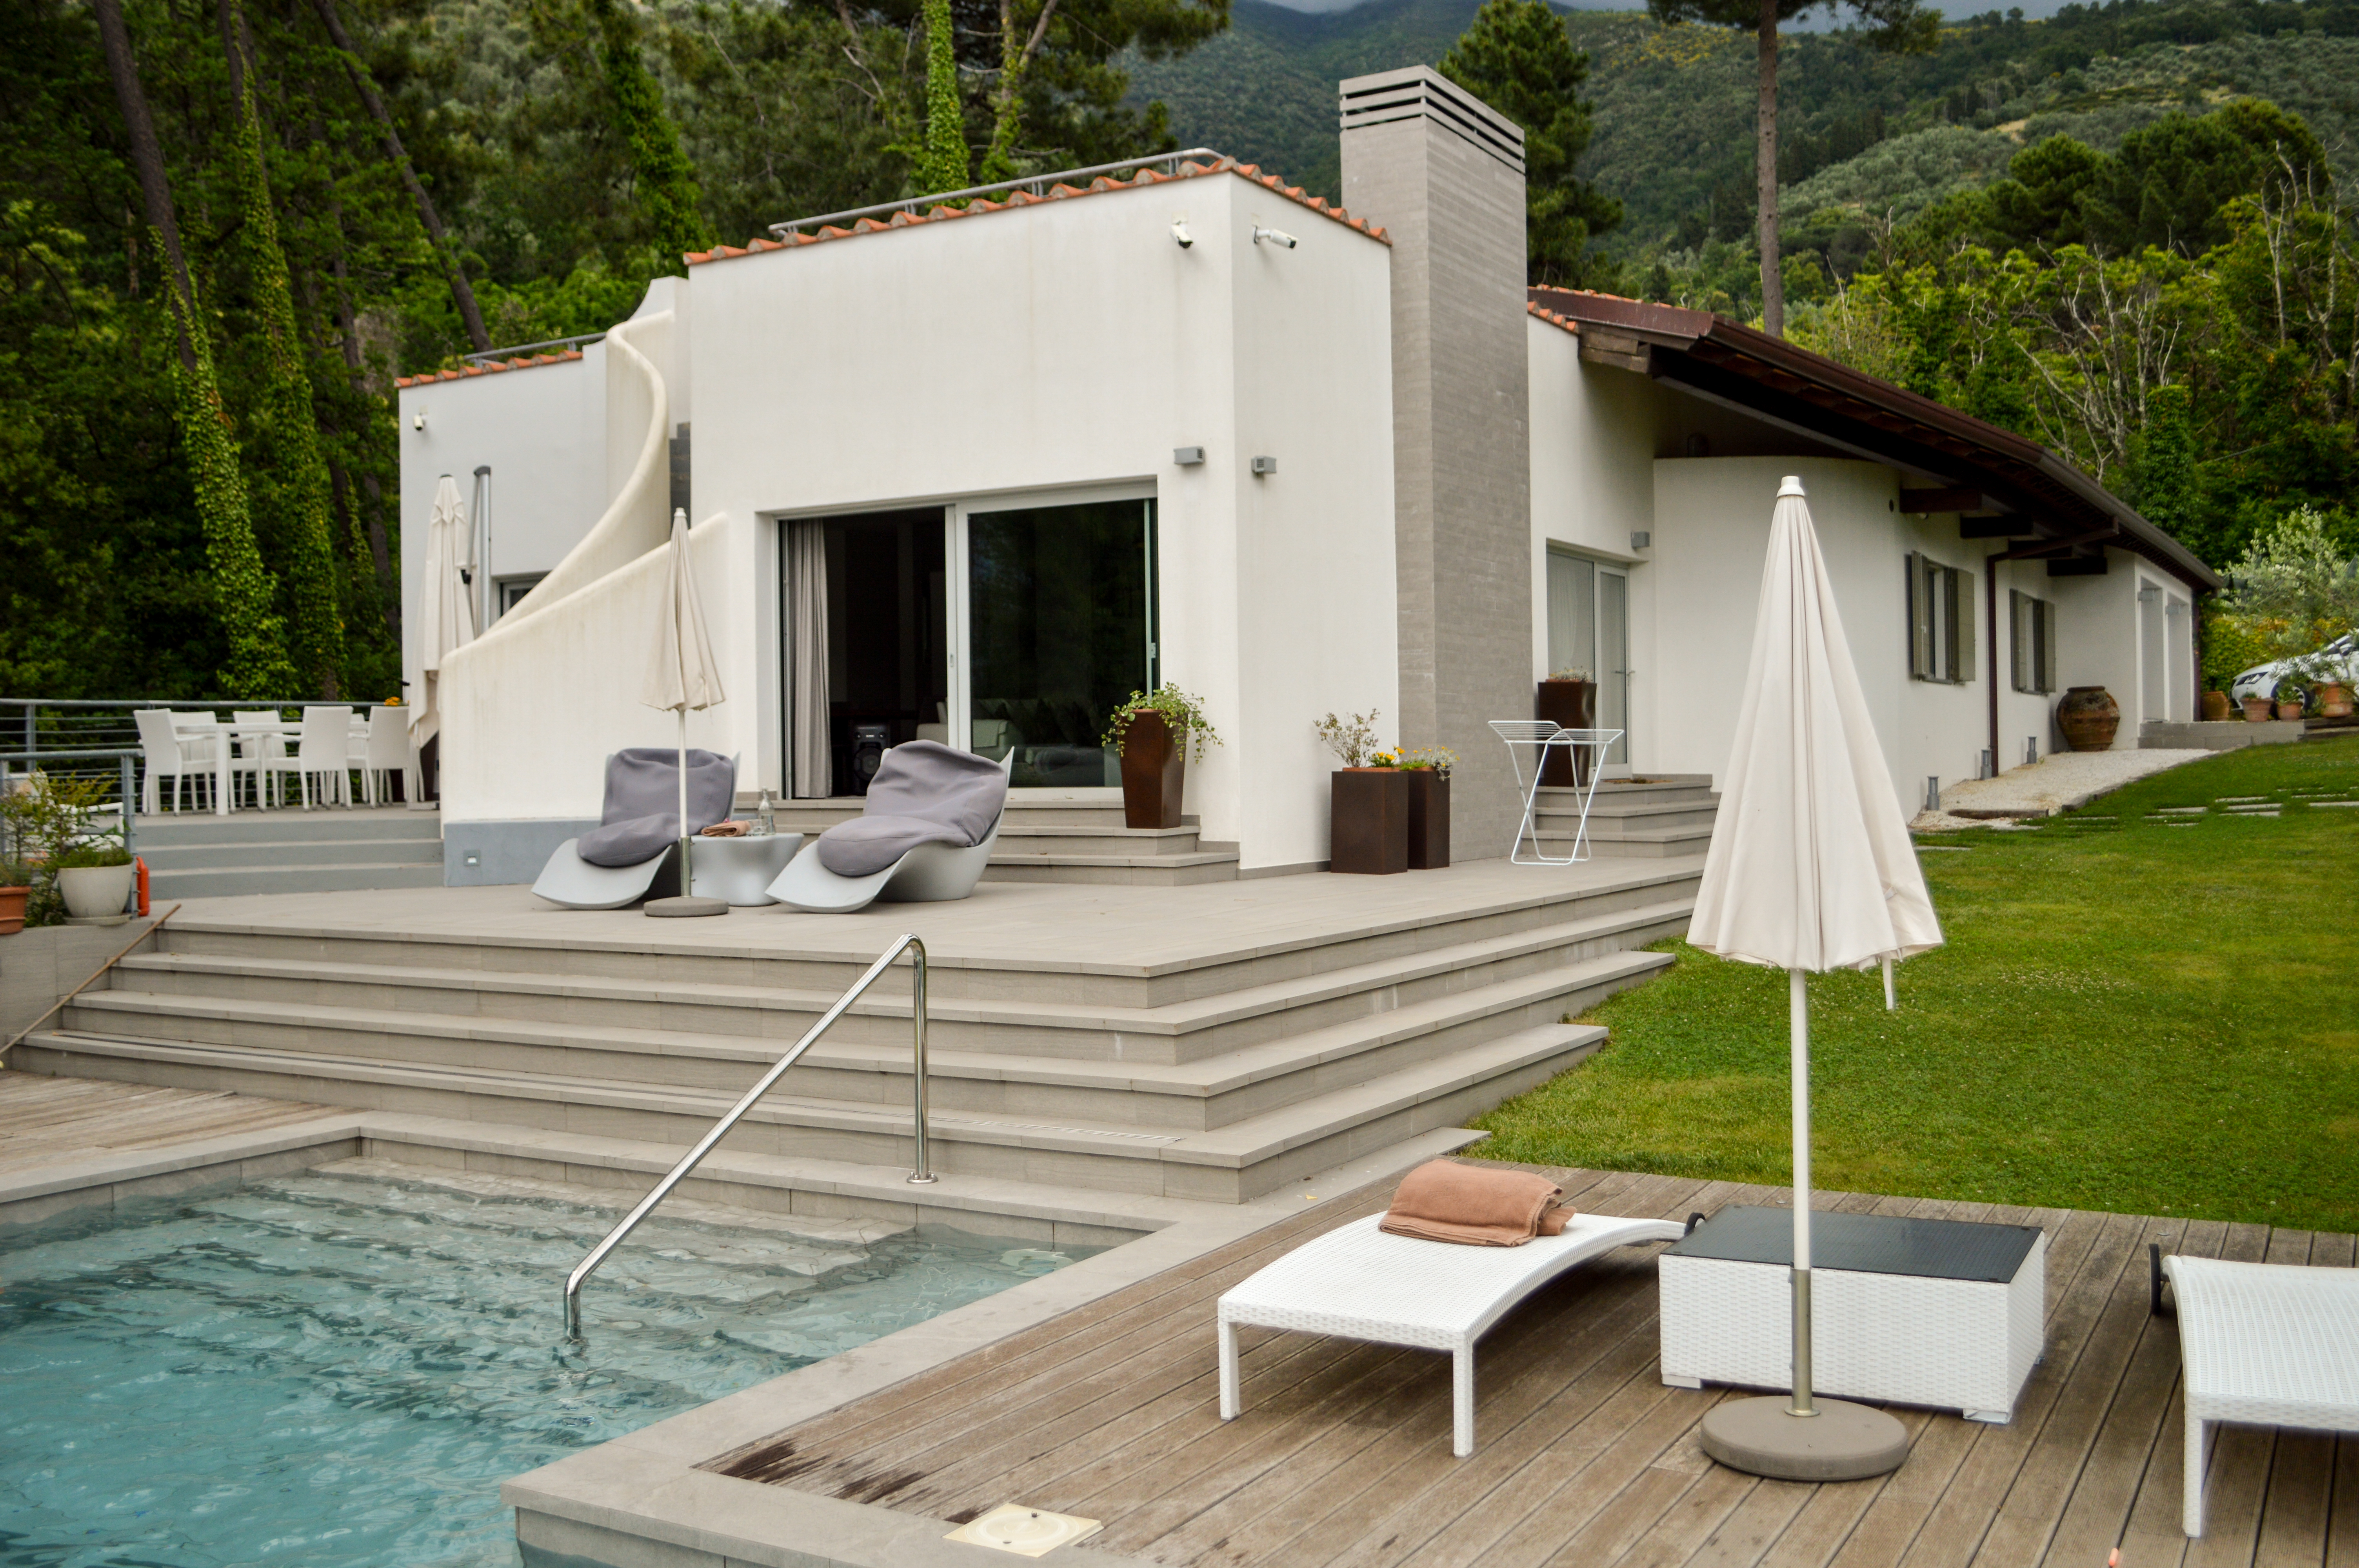 @saucepankids's cover photo for 'Review - LUXURY Villa le Silerchie in Tuscany with Windows on Italy - Saucepan Kids'